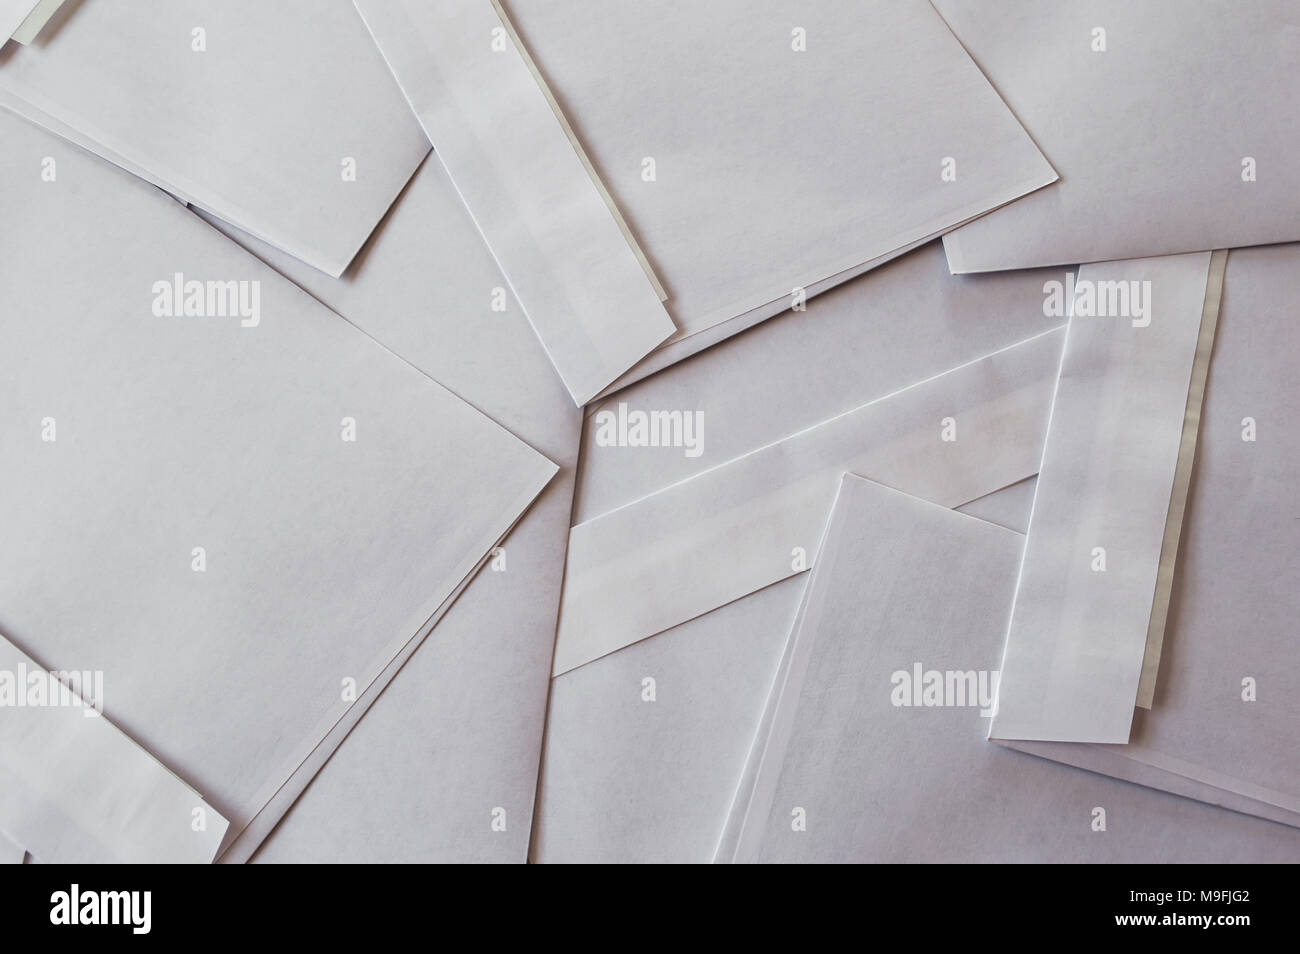 Background full of white letters envelopes. - Stock Image